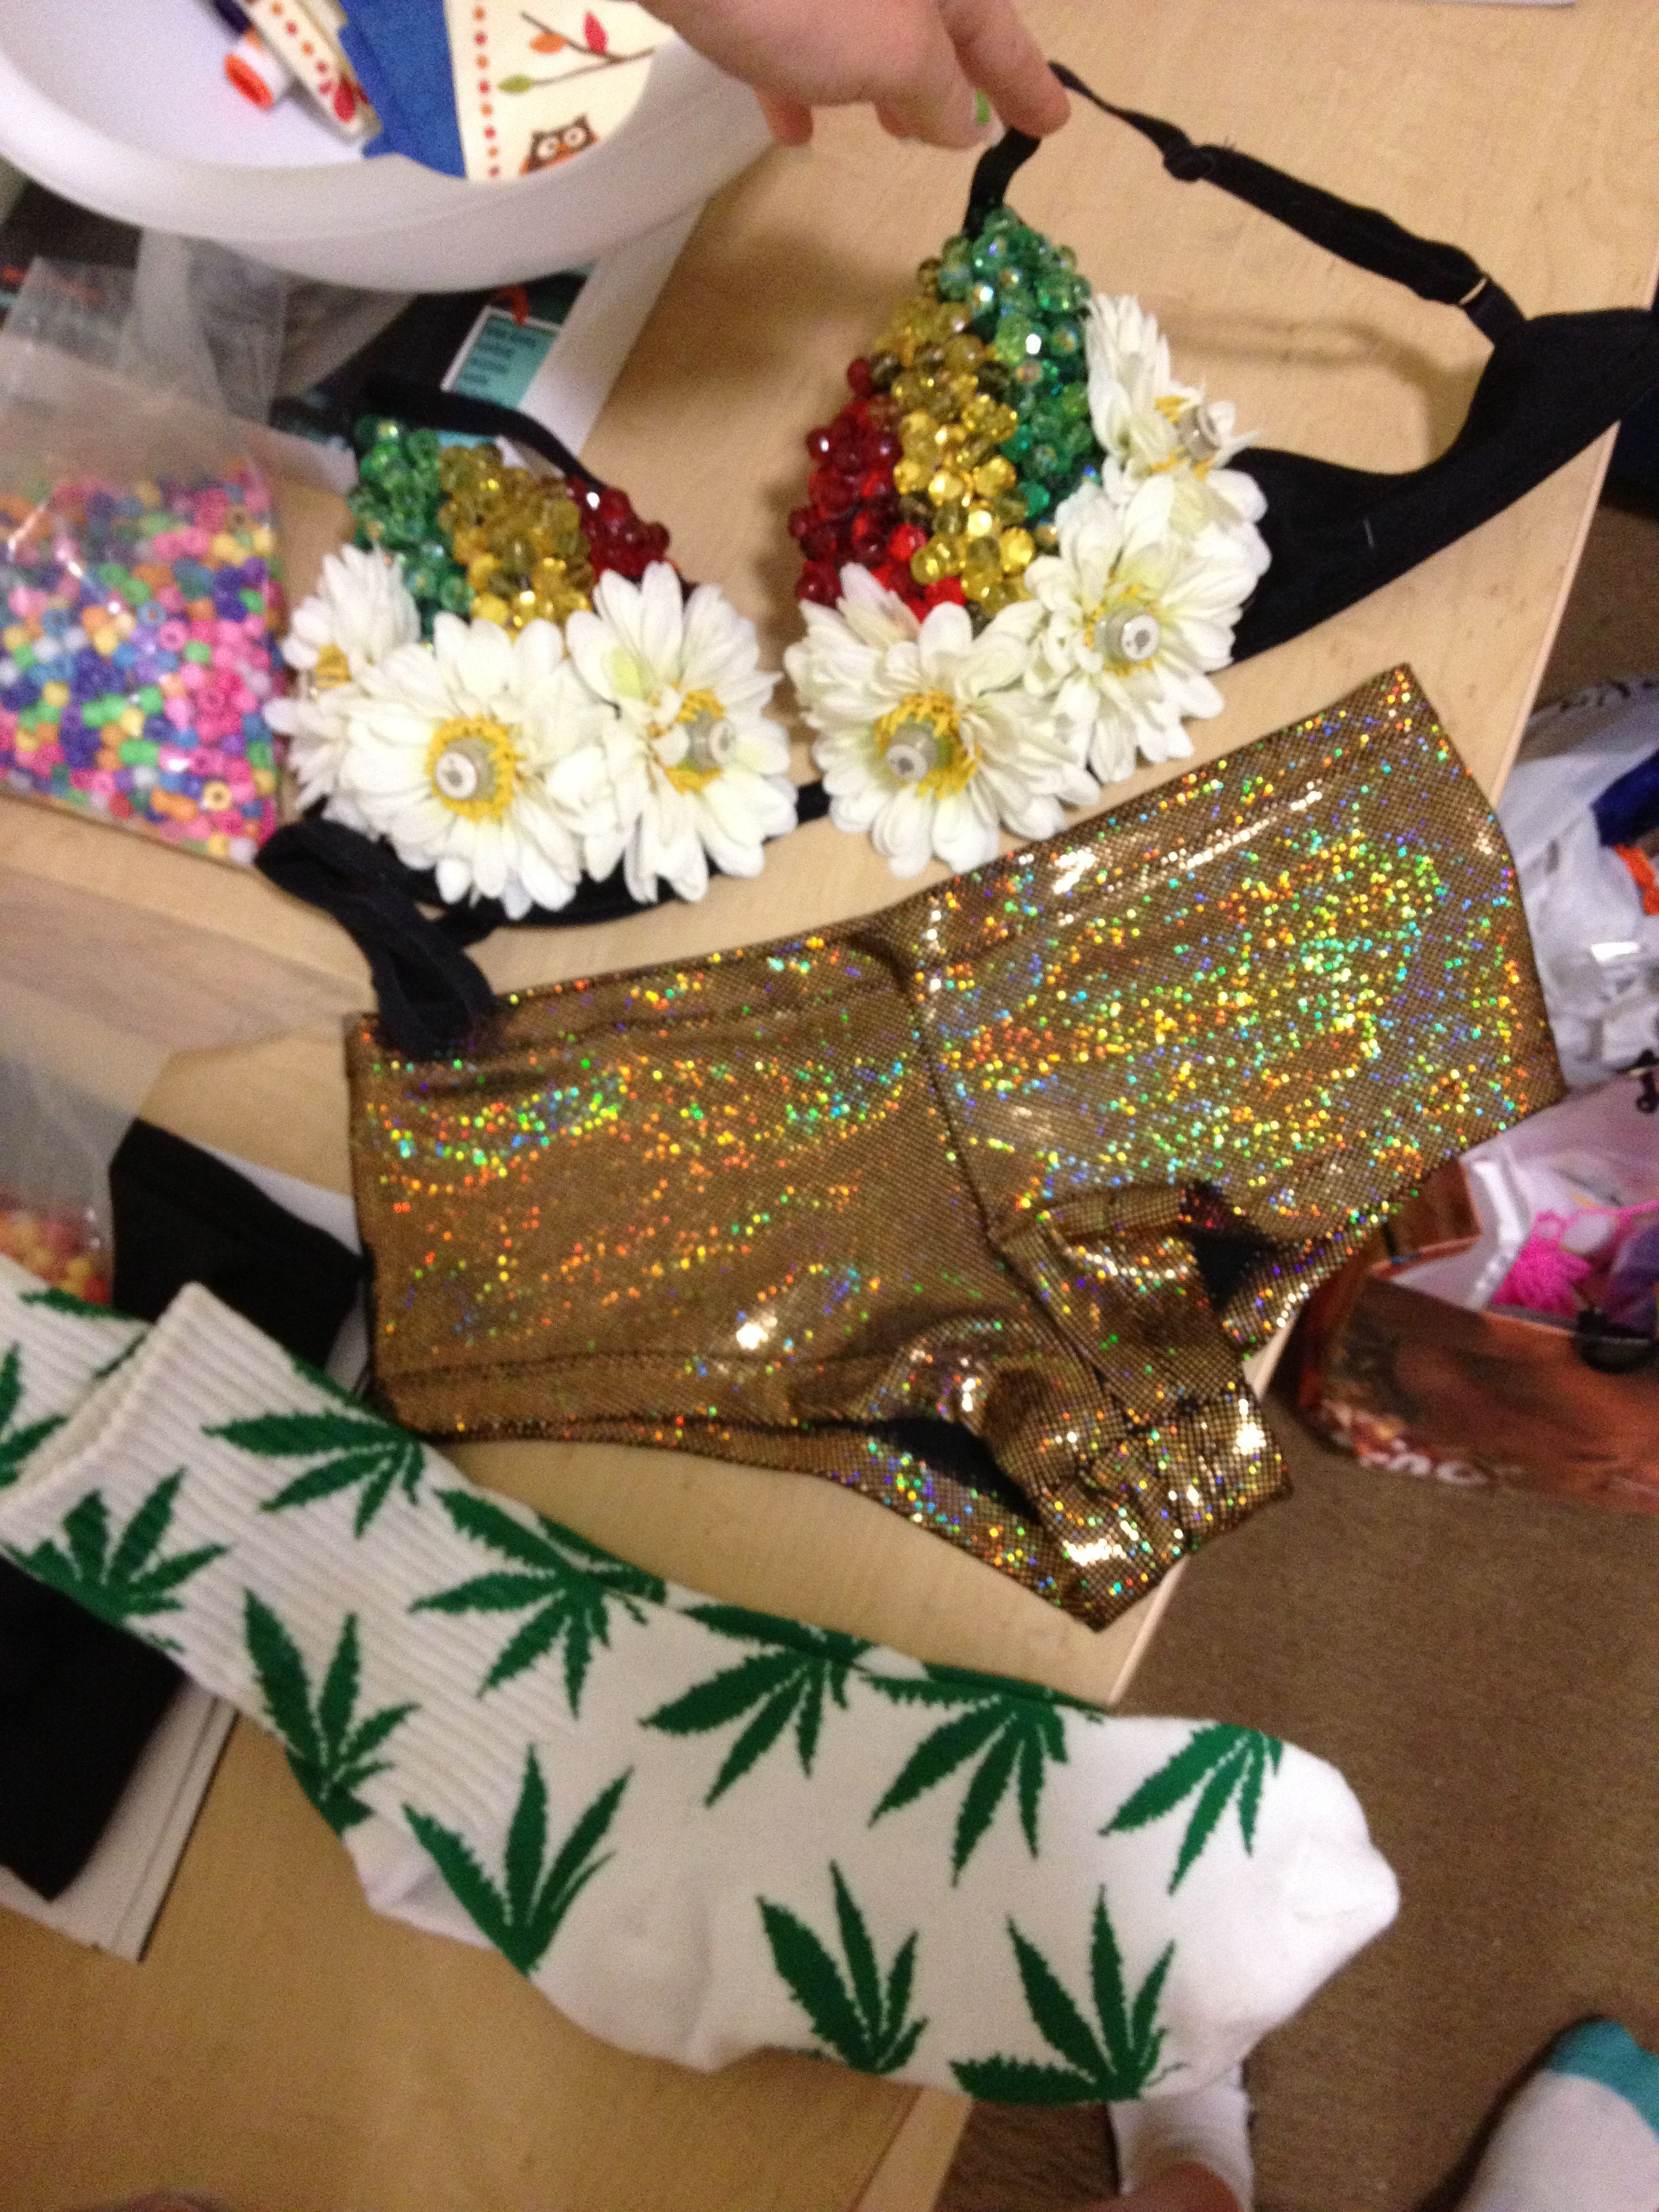 Rasta rave bra I made for edc Orlando 2012! There are lights in the center of each flower that flash red green and yellow!